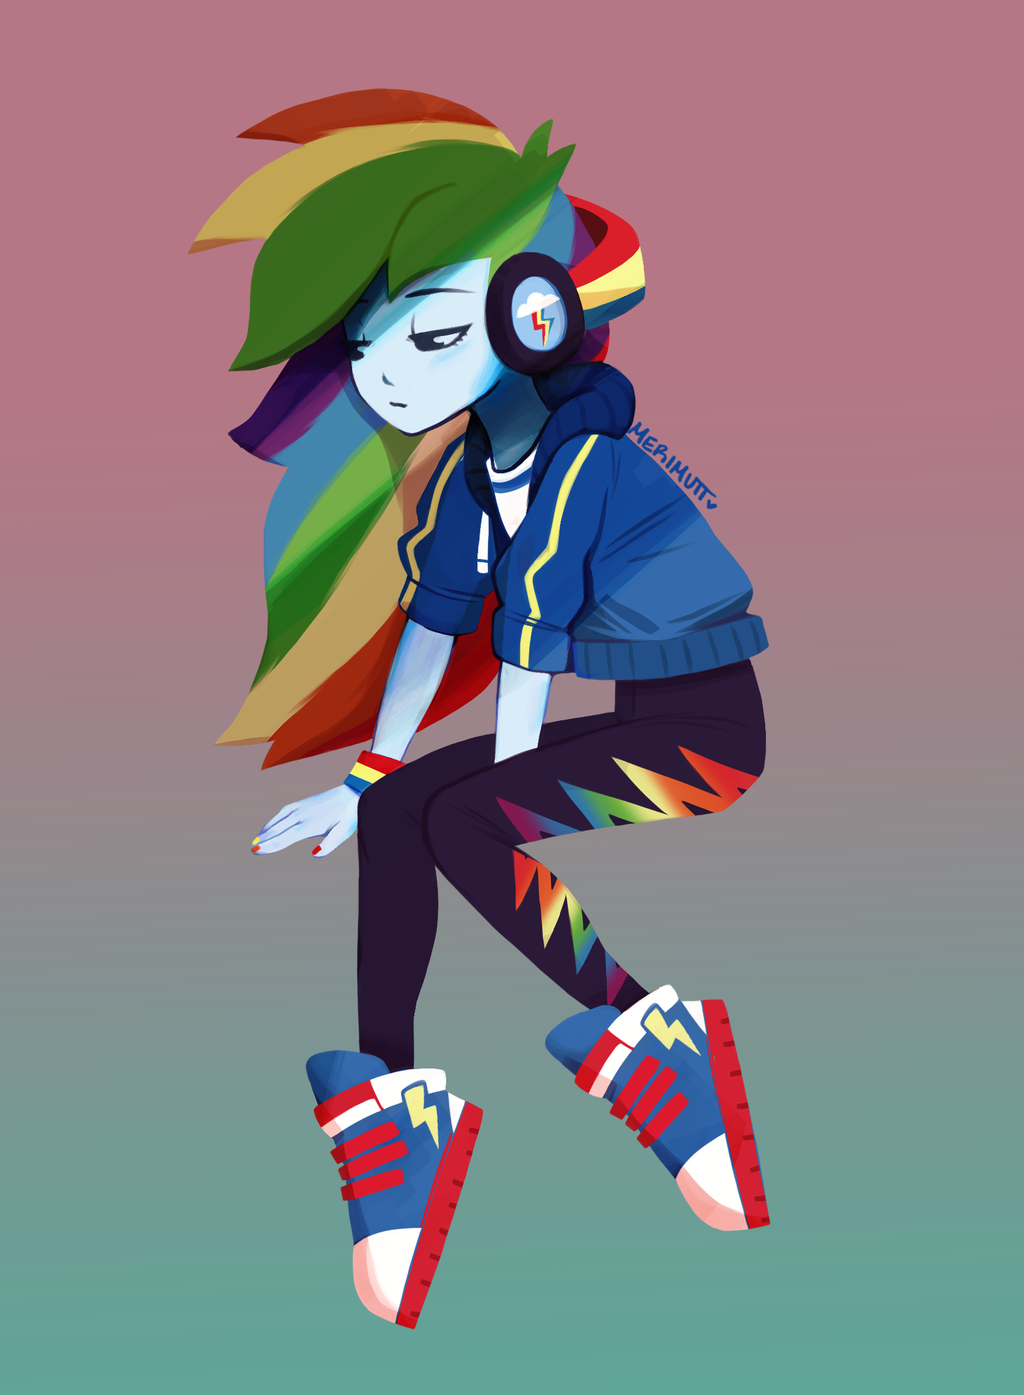 Most recent image: Rainbow Mood